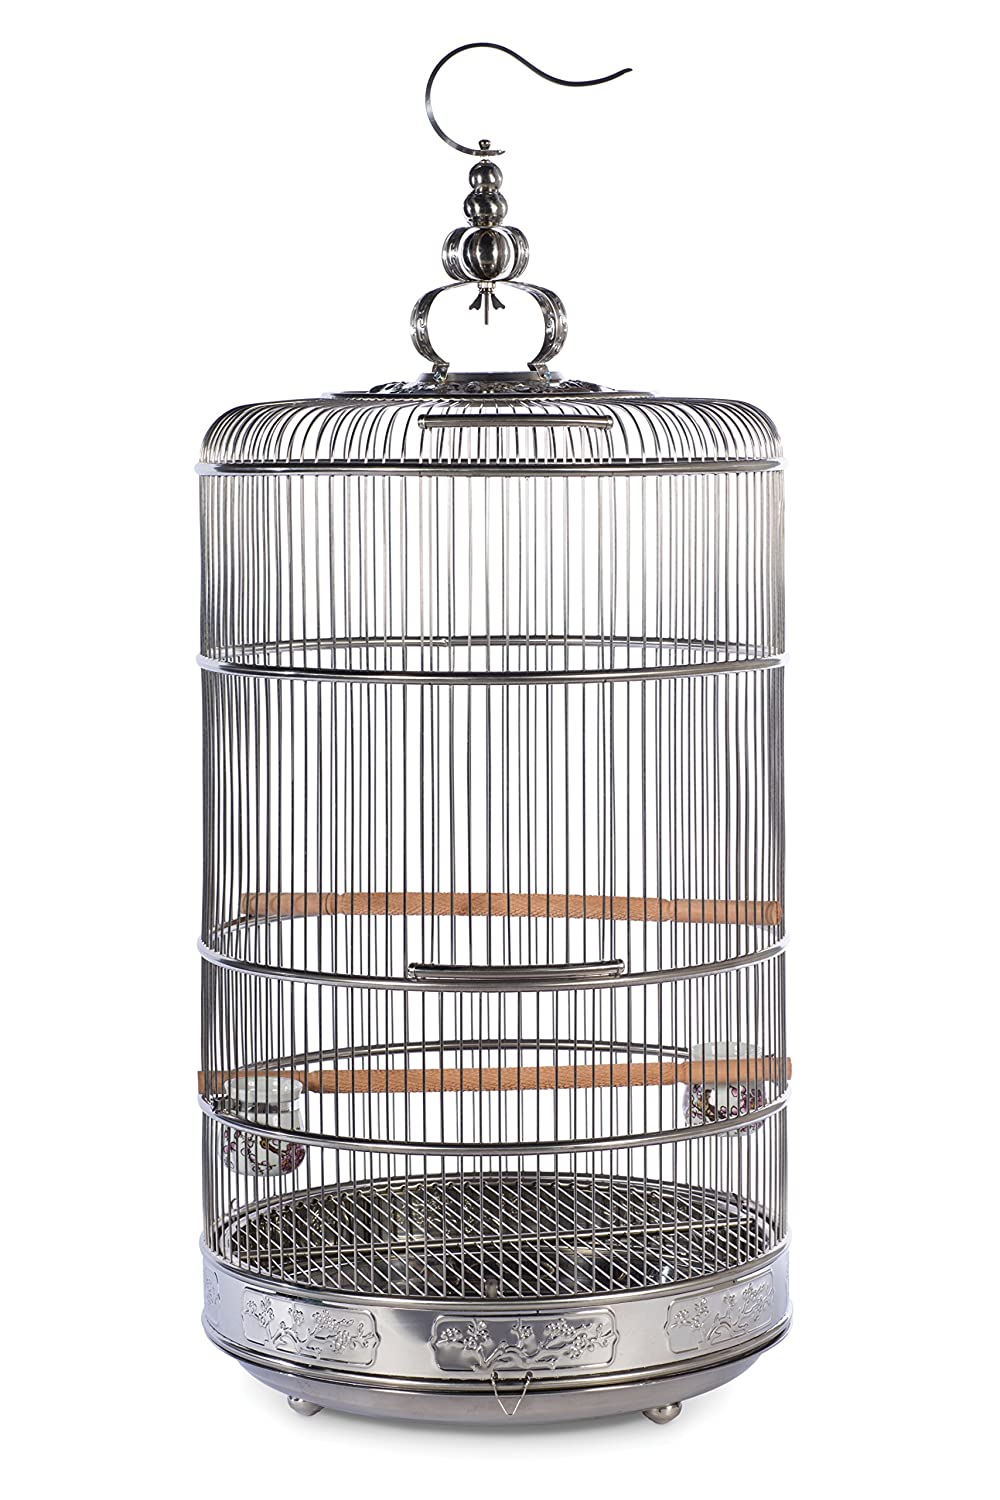 Prevue Pet Products best Bird Cage